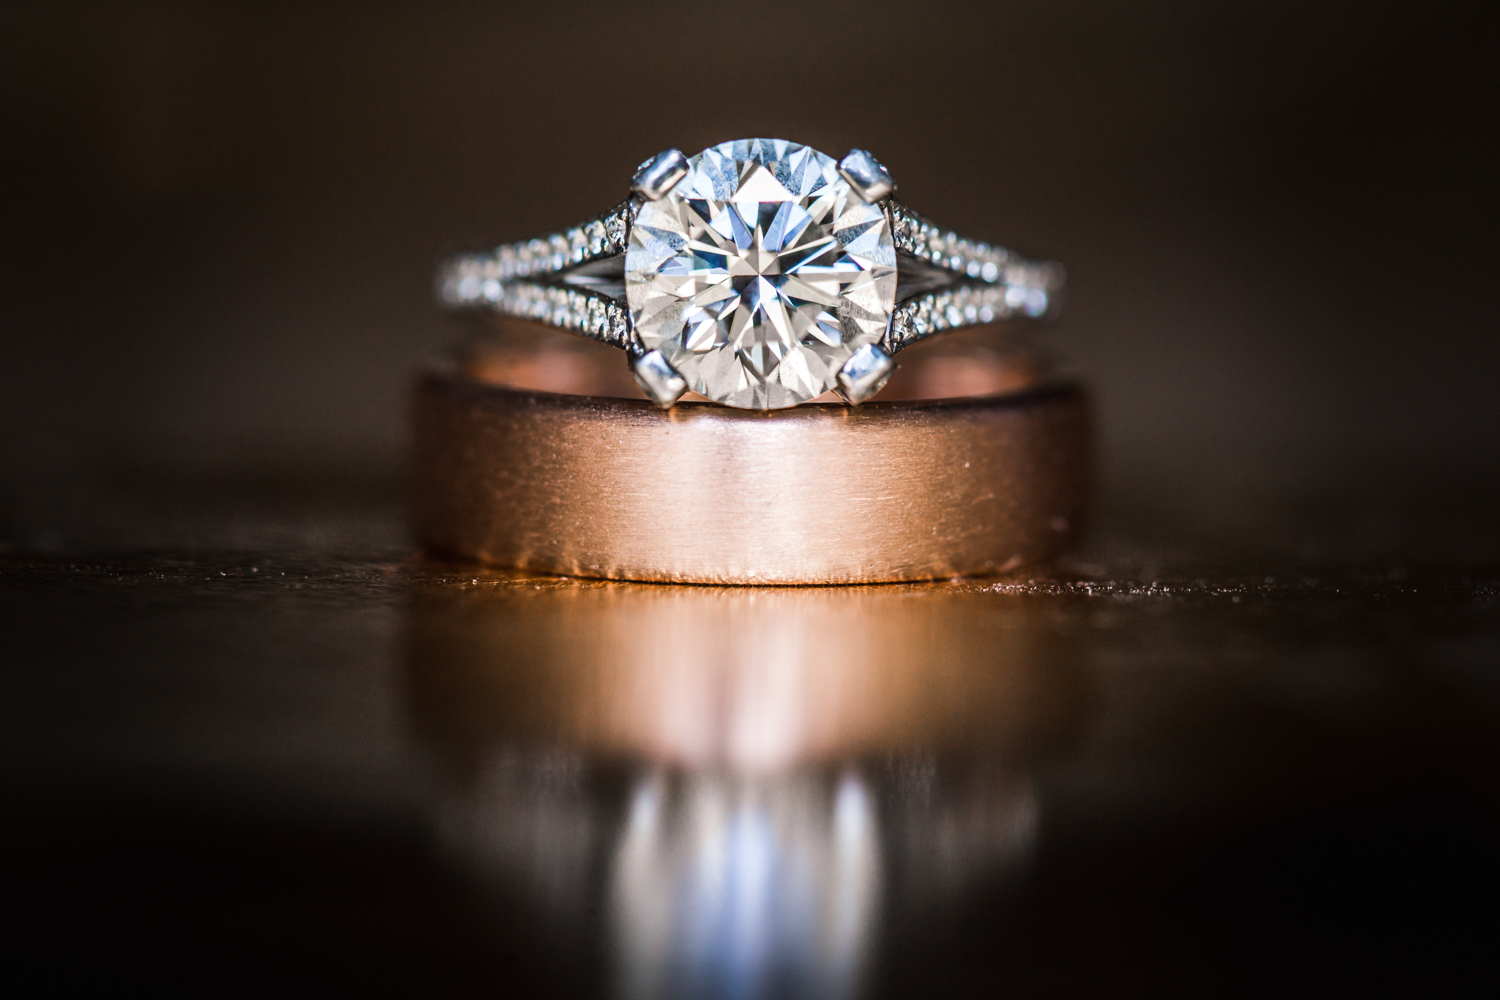 Wedding ring details photographed by JMGant Photography